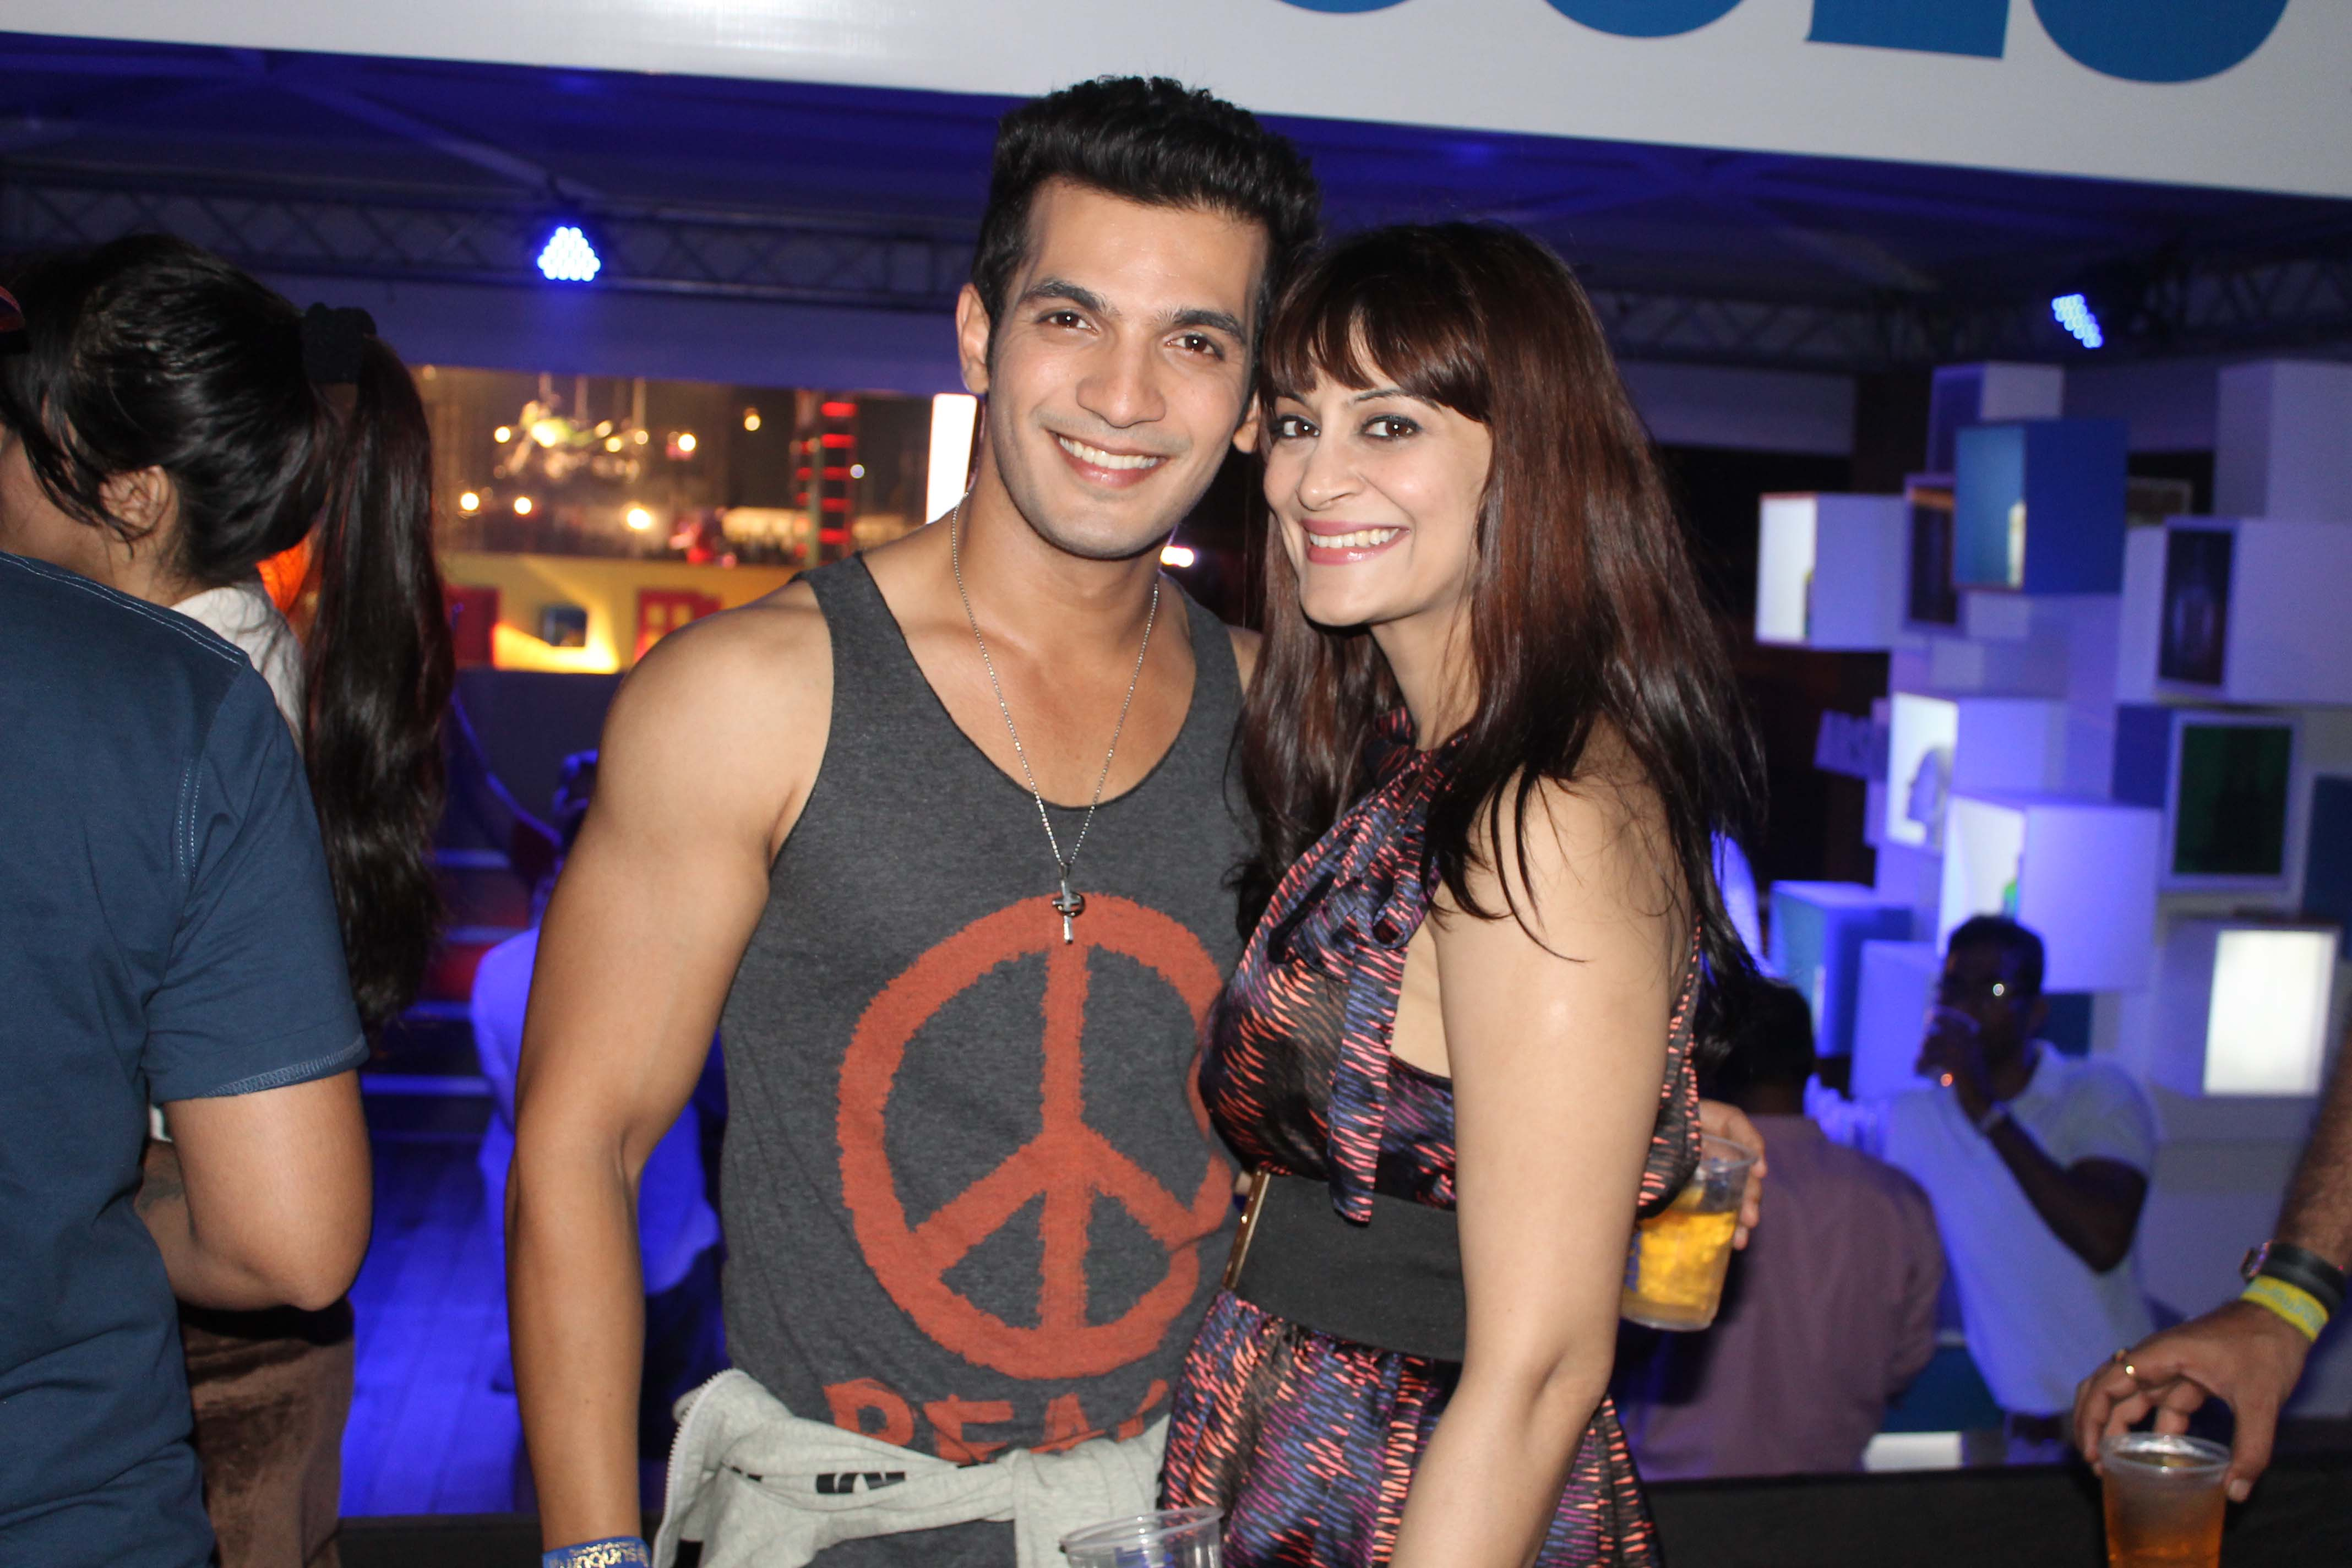 Arjun Bijlani With Cany Brar At Party